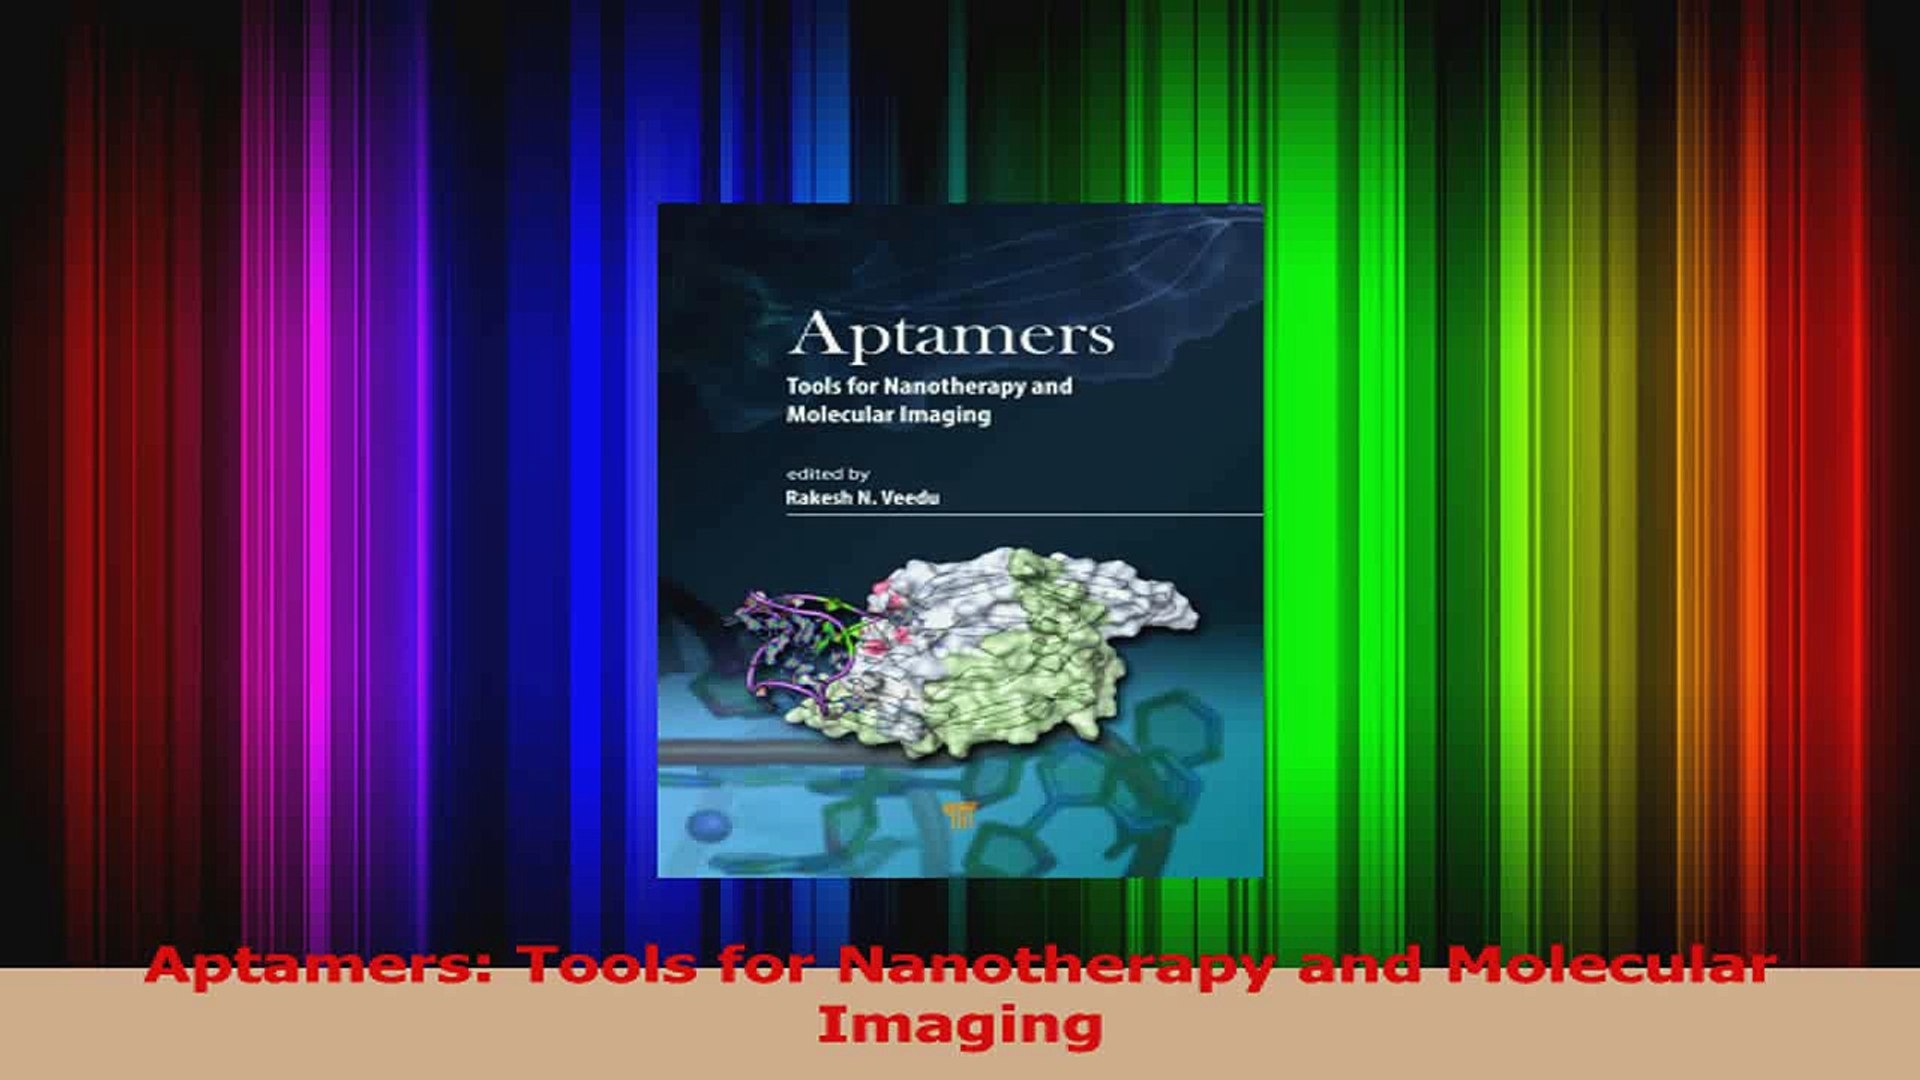 Aptamers: Tools for Nanotherapy and Molecular Imaging